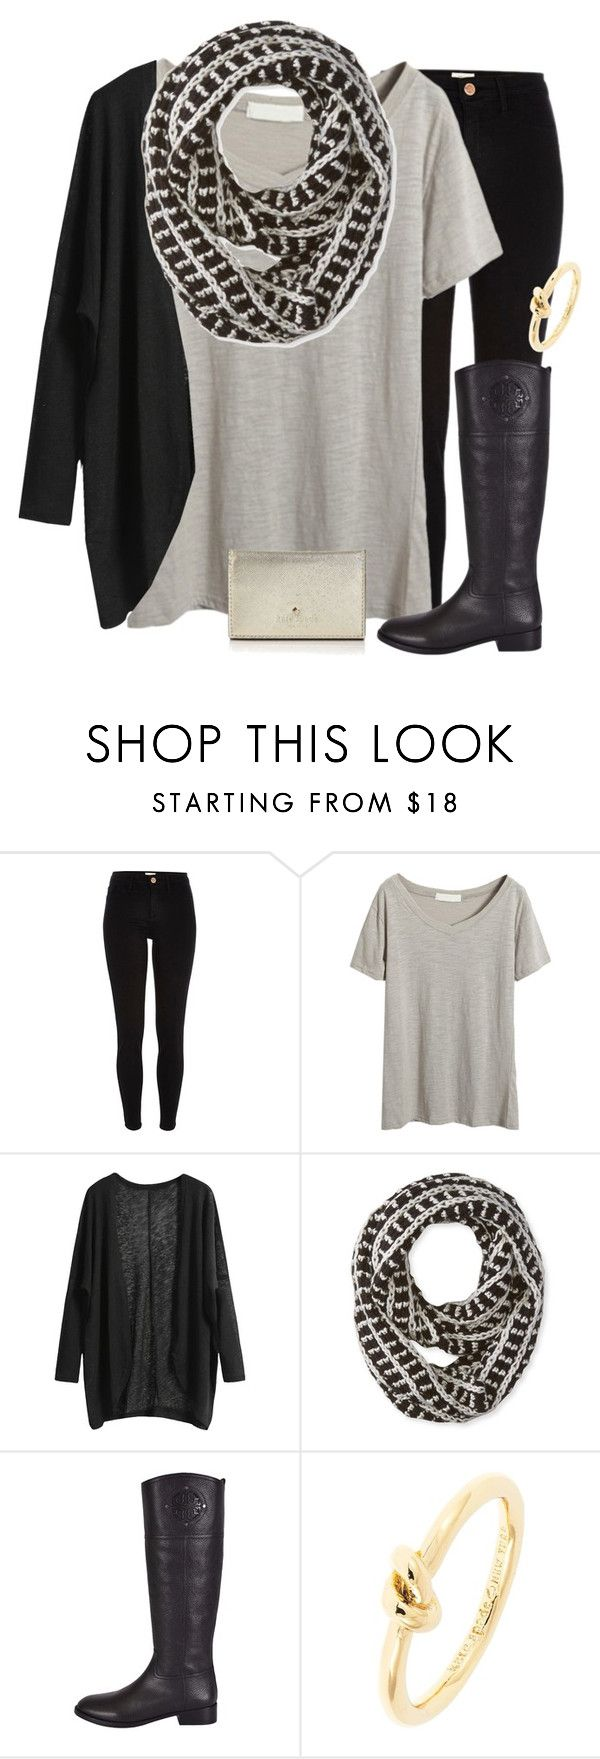 """""""Baby you're so classic"""" by madelynprice ❤ liked on Polyvore featuring River Island, Big Buddha, Tory Burch and Kate Spade"""